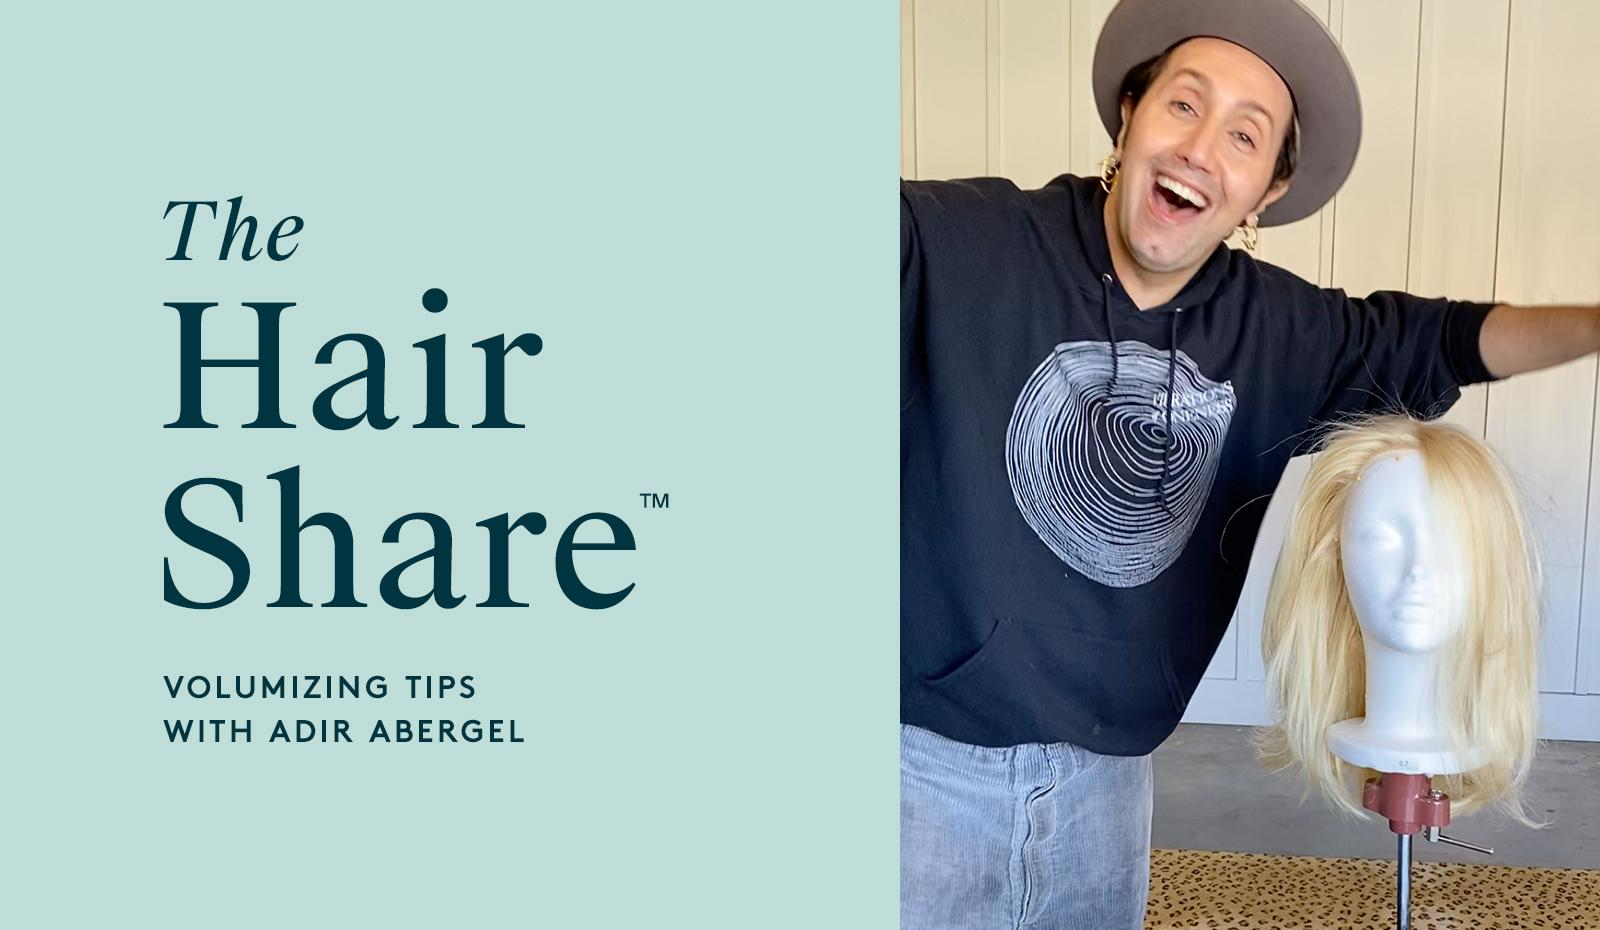 The Hair Share®: Volumizing Tips from Adir Abergel